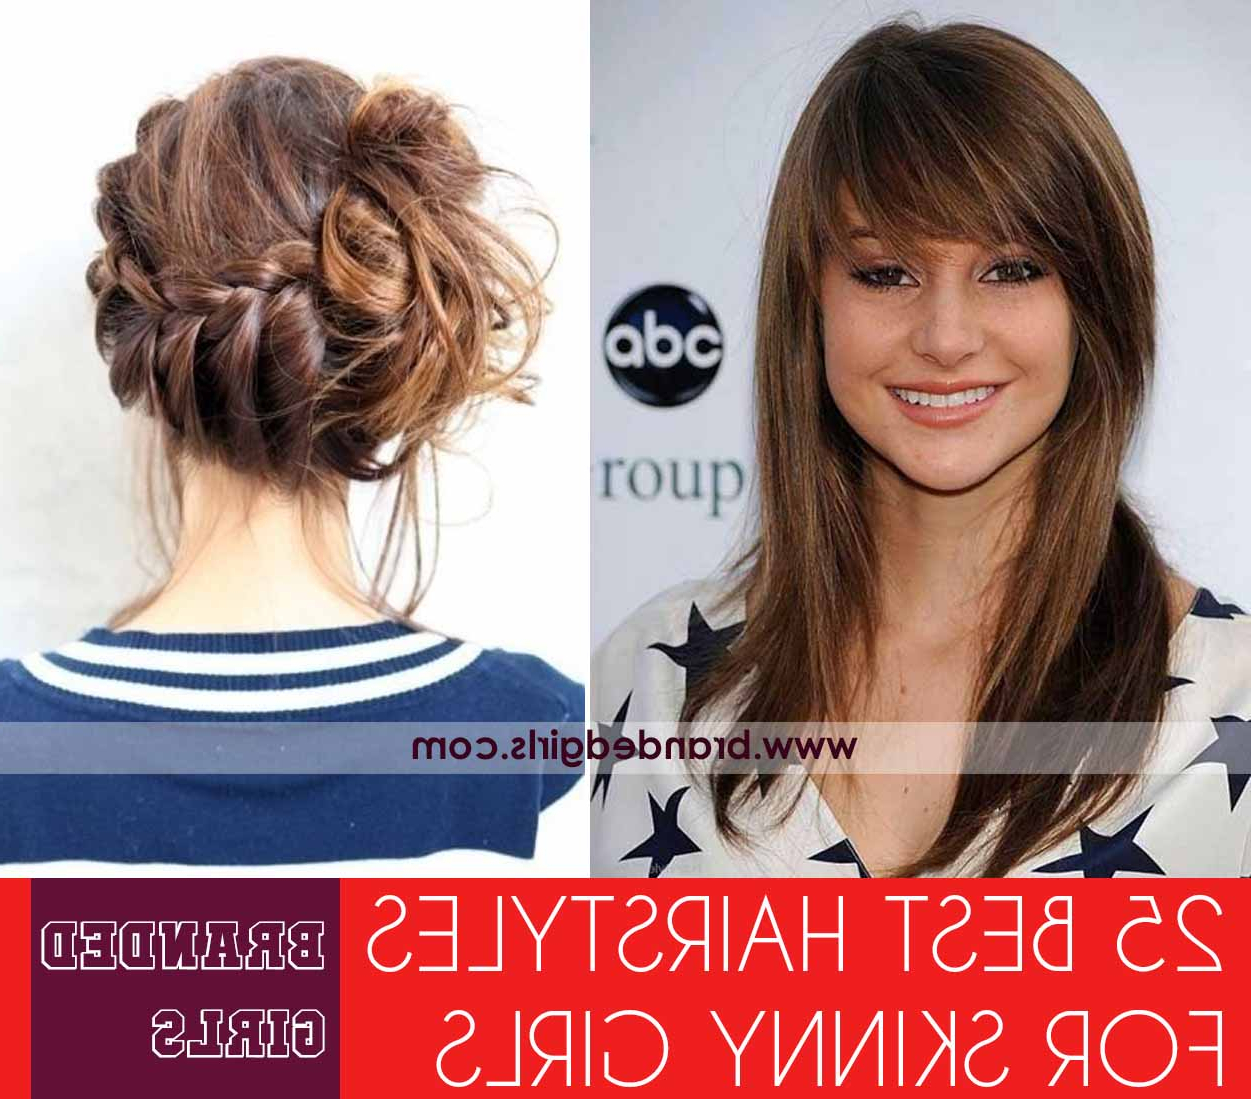 Skinny Girl Hair Looks – 25 Best Hairstyles For Skinny Girls Intended For Short Hairstyles For Petite Faces (View 3 of 25)